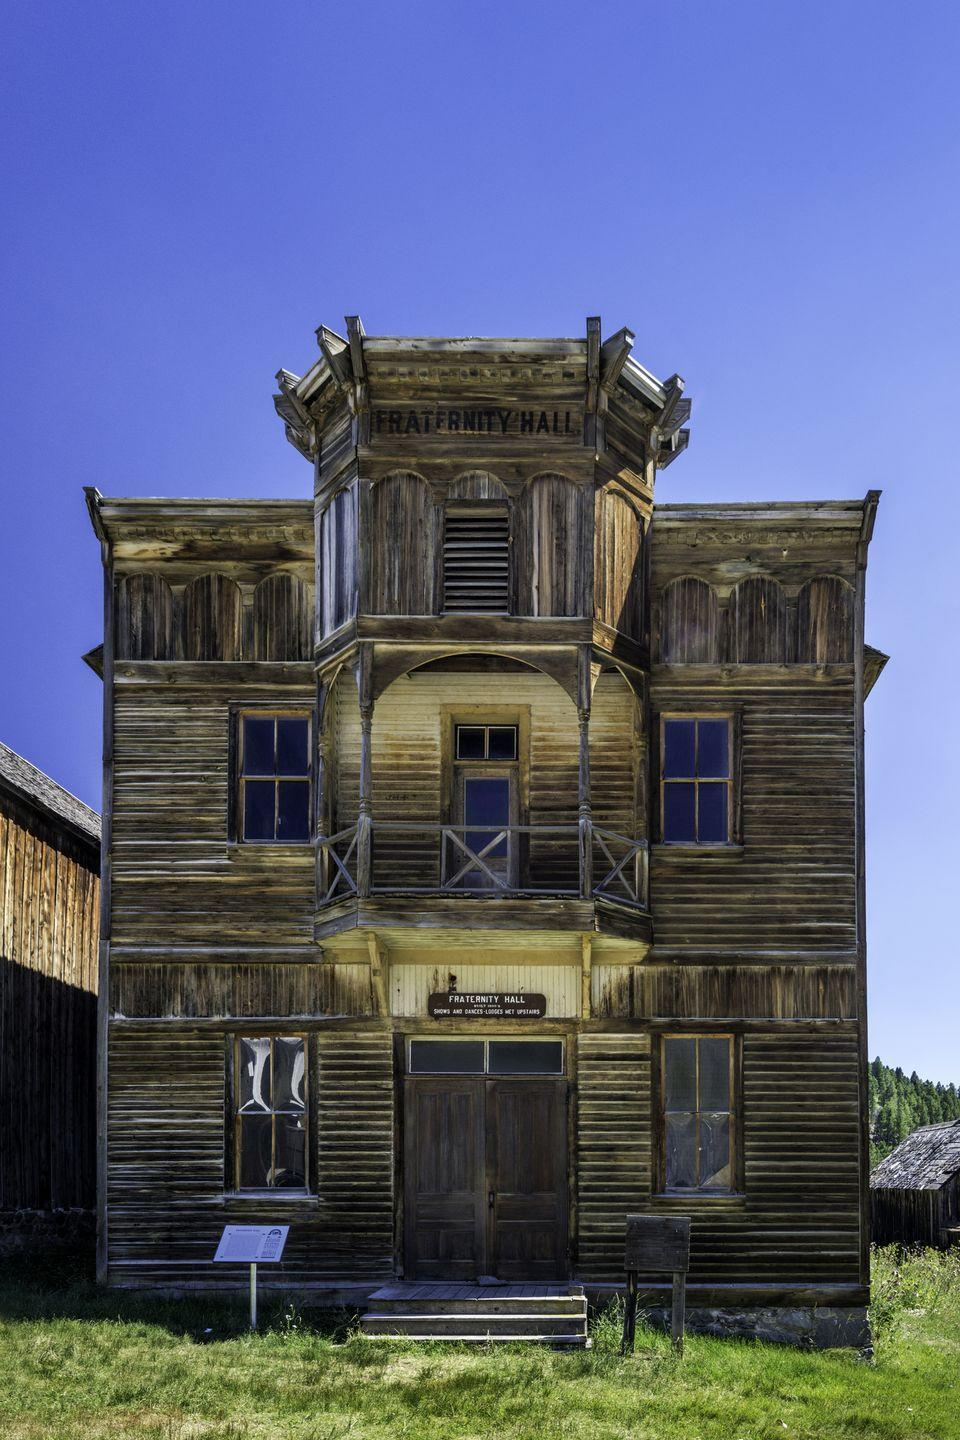 <p><strong>Population:</strong> 10</p><p><br><br>This ghost town used to be a mecca for silver mining. The Fraternity Hall, a structure used to host town gatherings, is one of the only buildings left. <br></p>